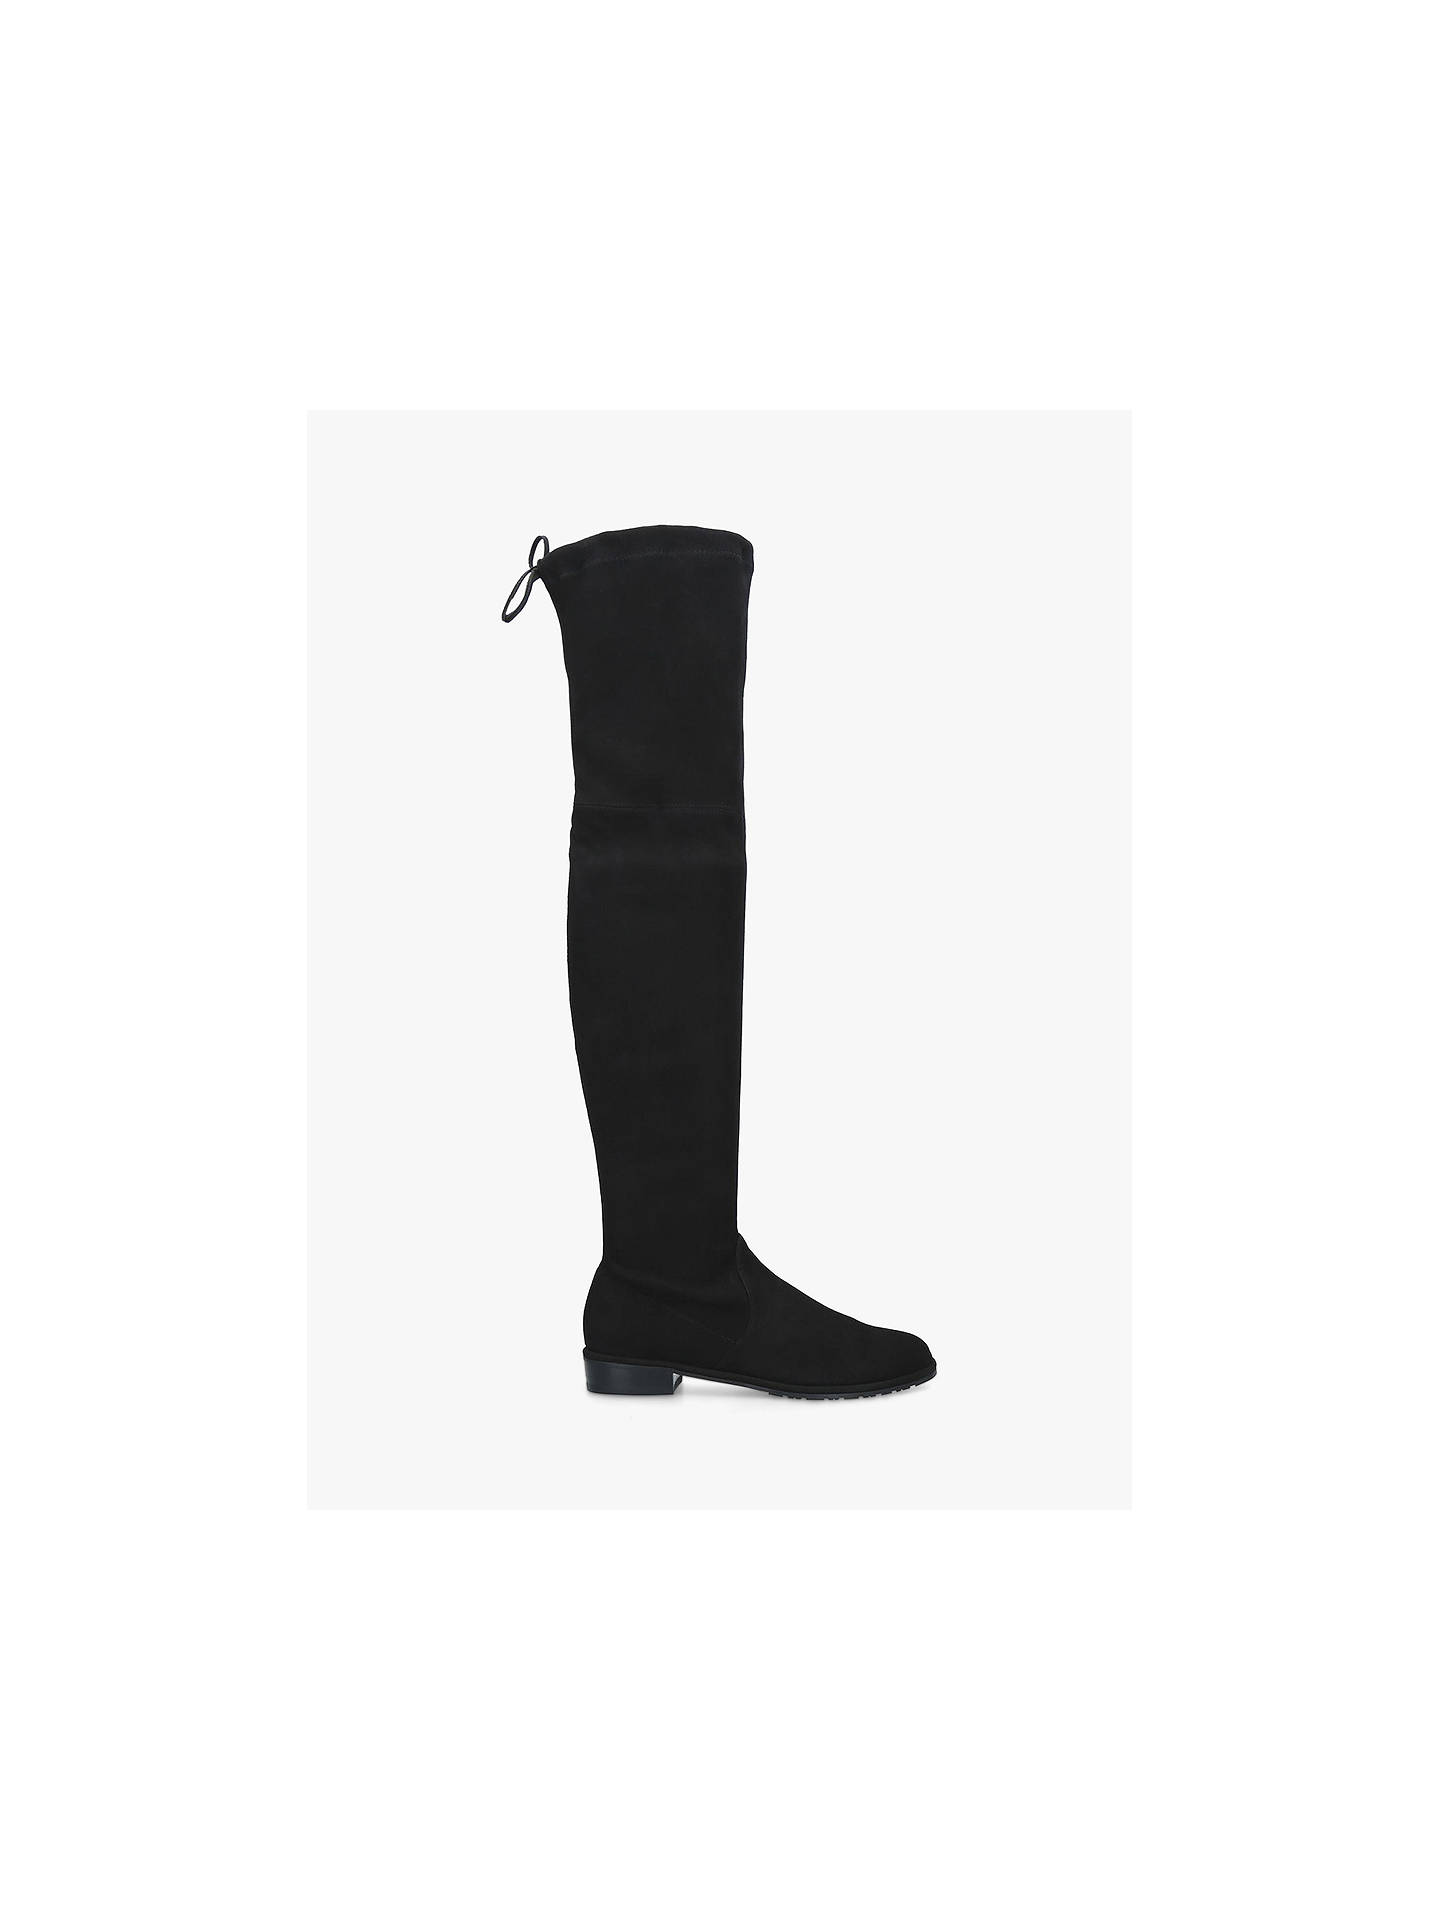 86704163f4f Buy Stuart Weitzman Lowland Over The Knee Boots